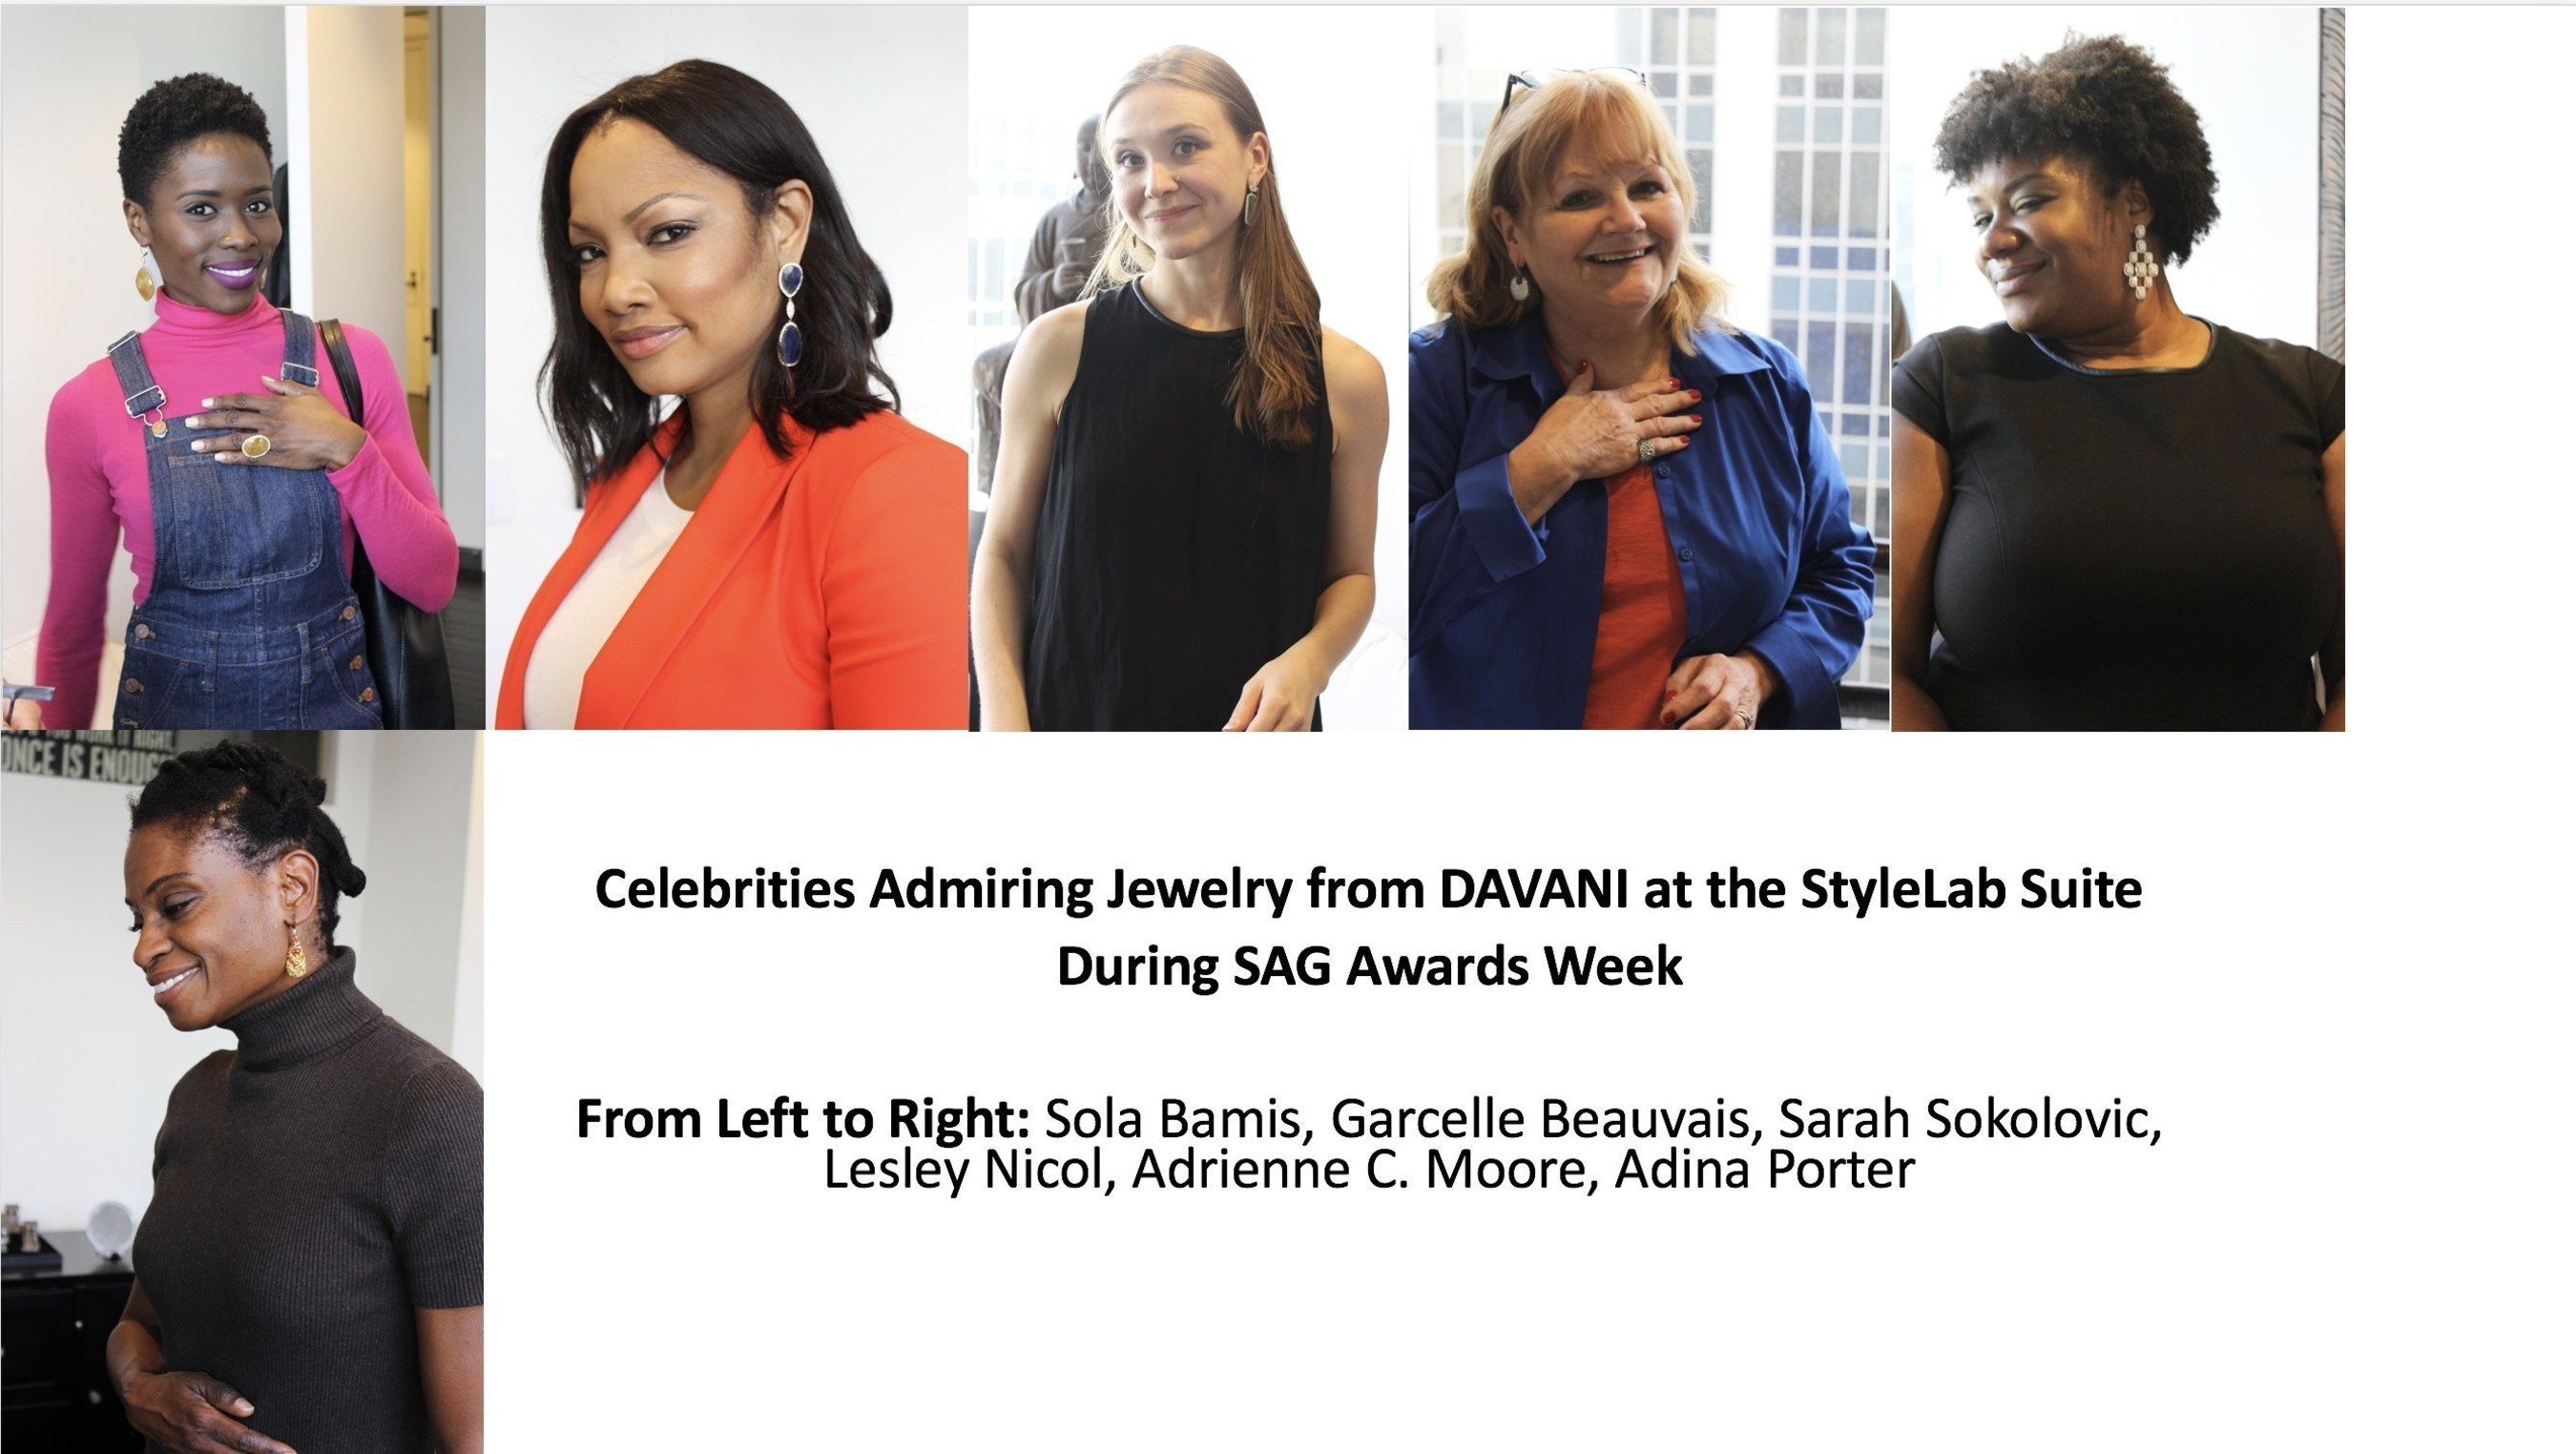 Celebrities And Their Stylists Previewed Jewelry From DAVANI At StyleLab's Suite During SAG Awards Week